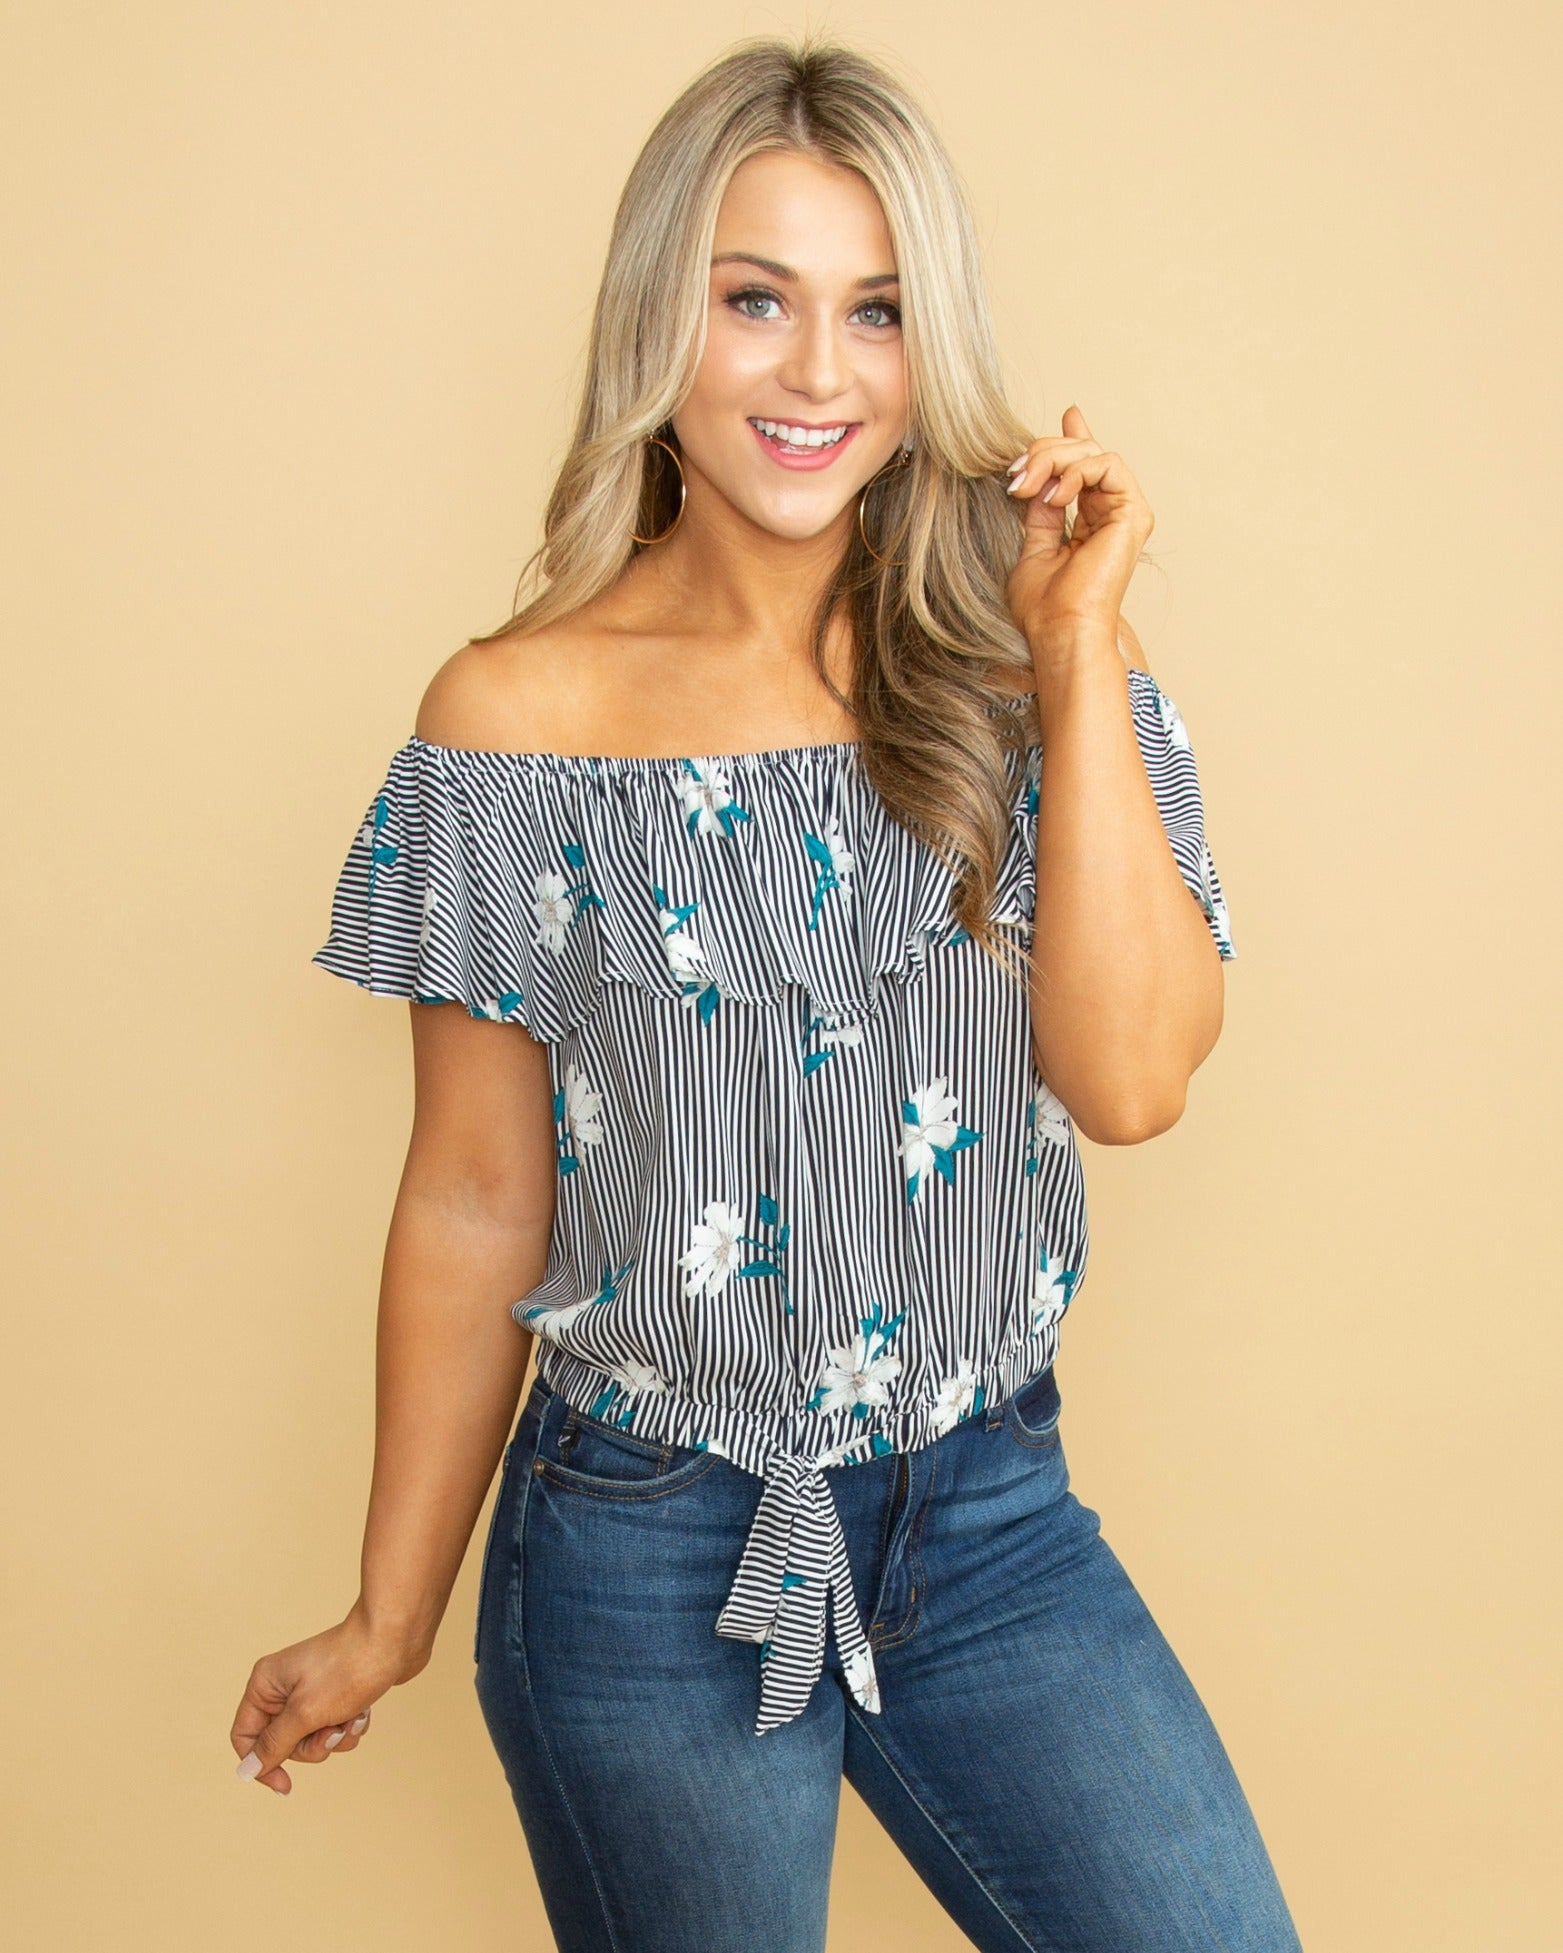 bba7352f24a Sweetest Devotion Floral Off Shoulder Top - Navy - Eleven Oaks Boutique